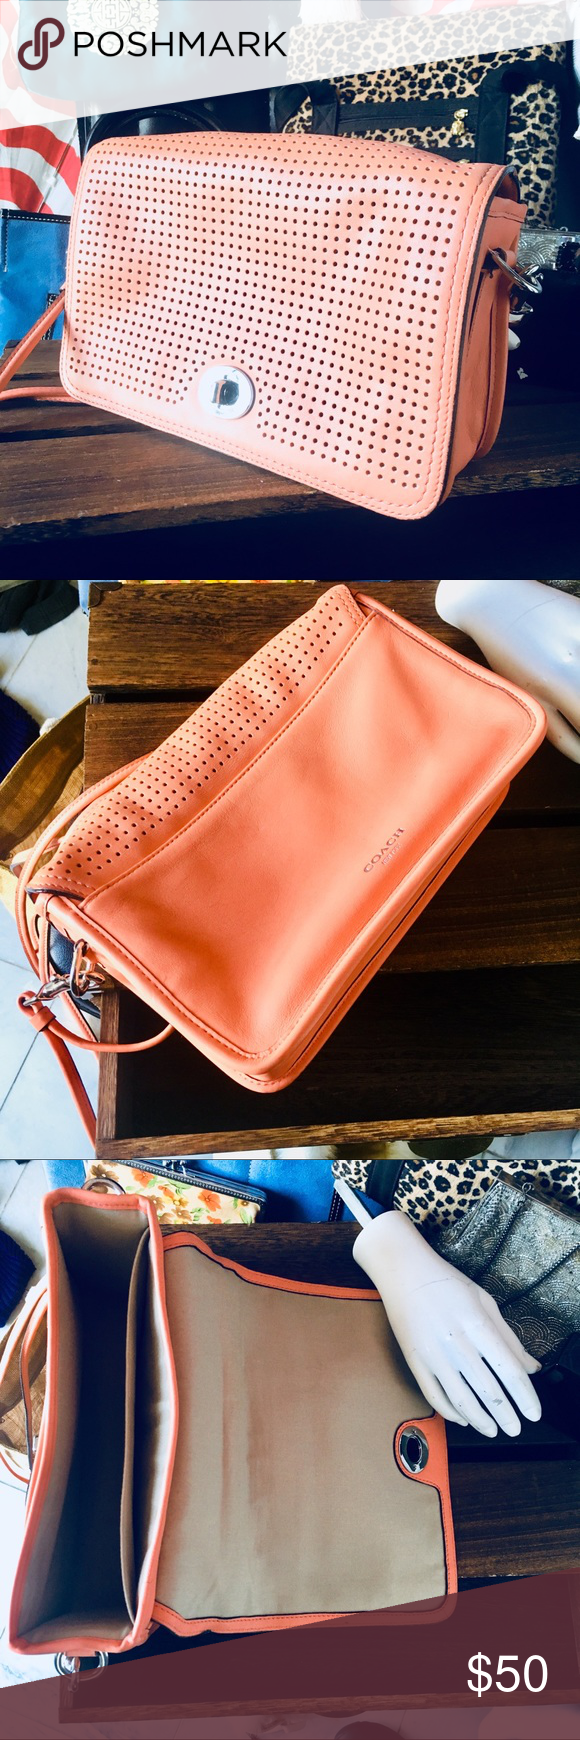 Coach legacy Penelope purse in coral color Coach legacy perforated legacy  Penelope penny shoulder purse in 8cdfba0609715